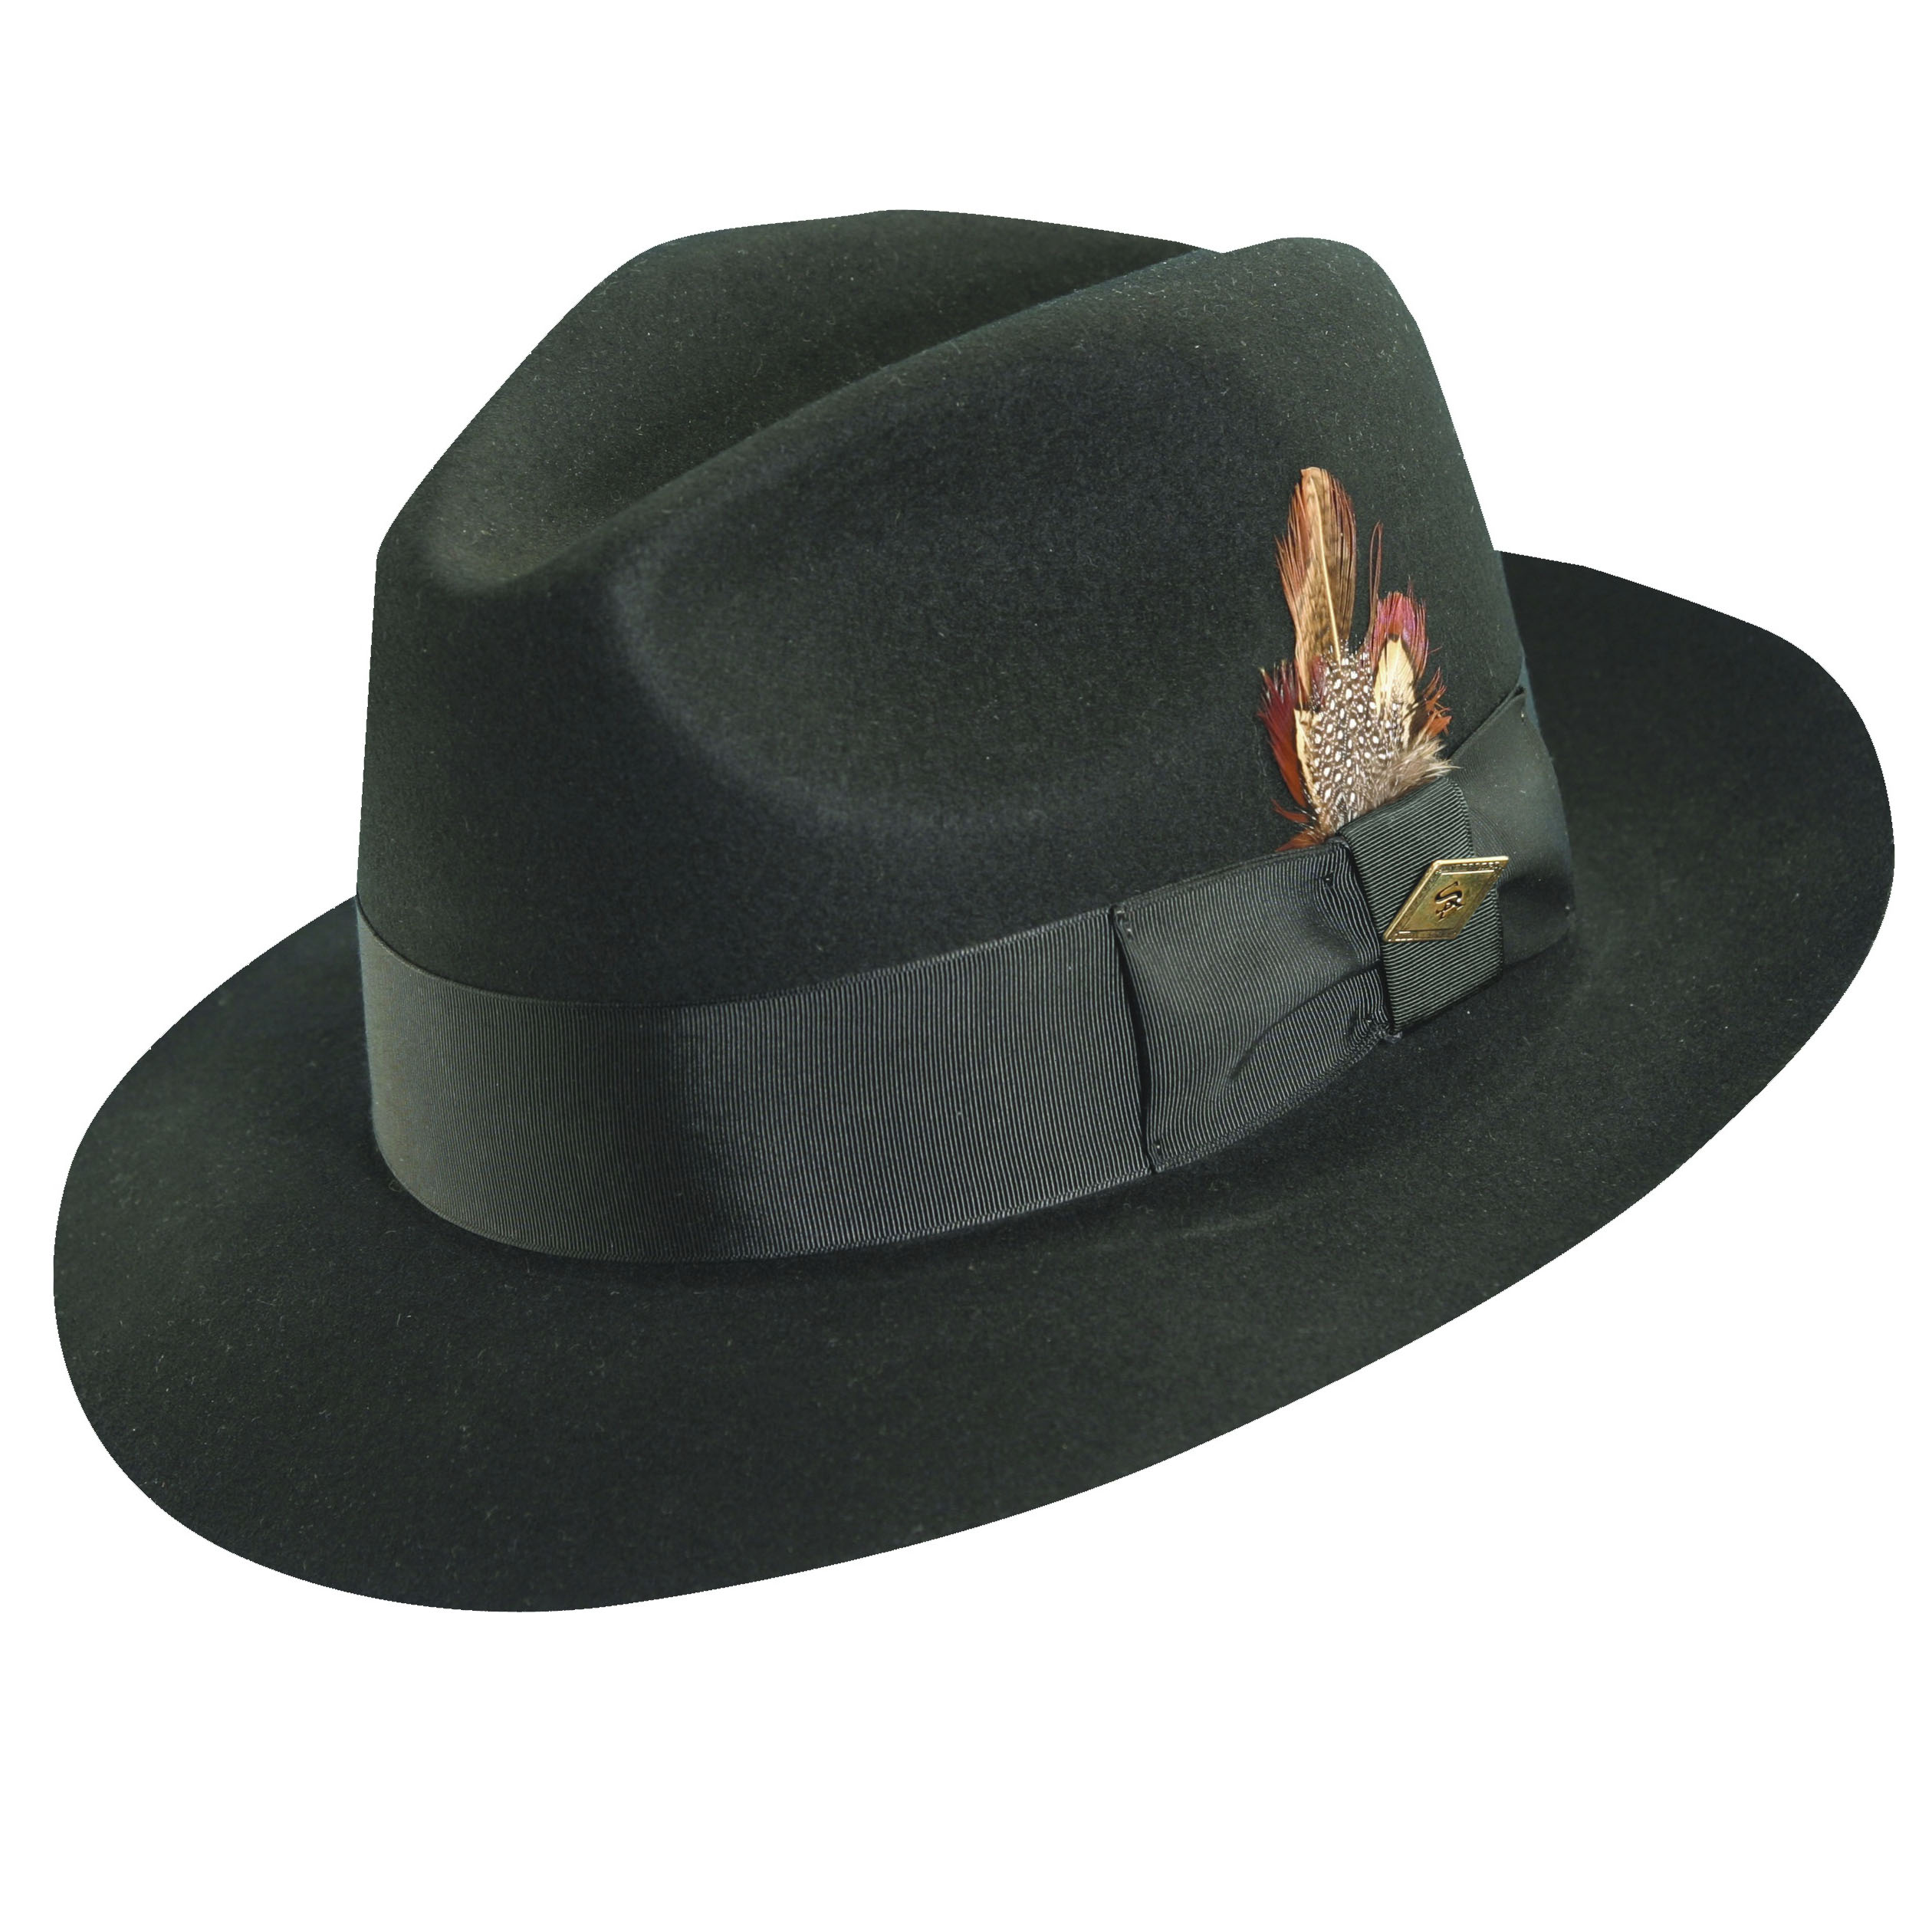 Stacy Adams Wool Felt Fedora Black 1f2a3d1e44c